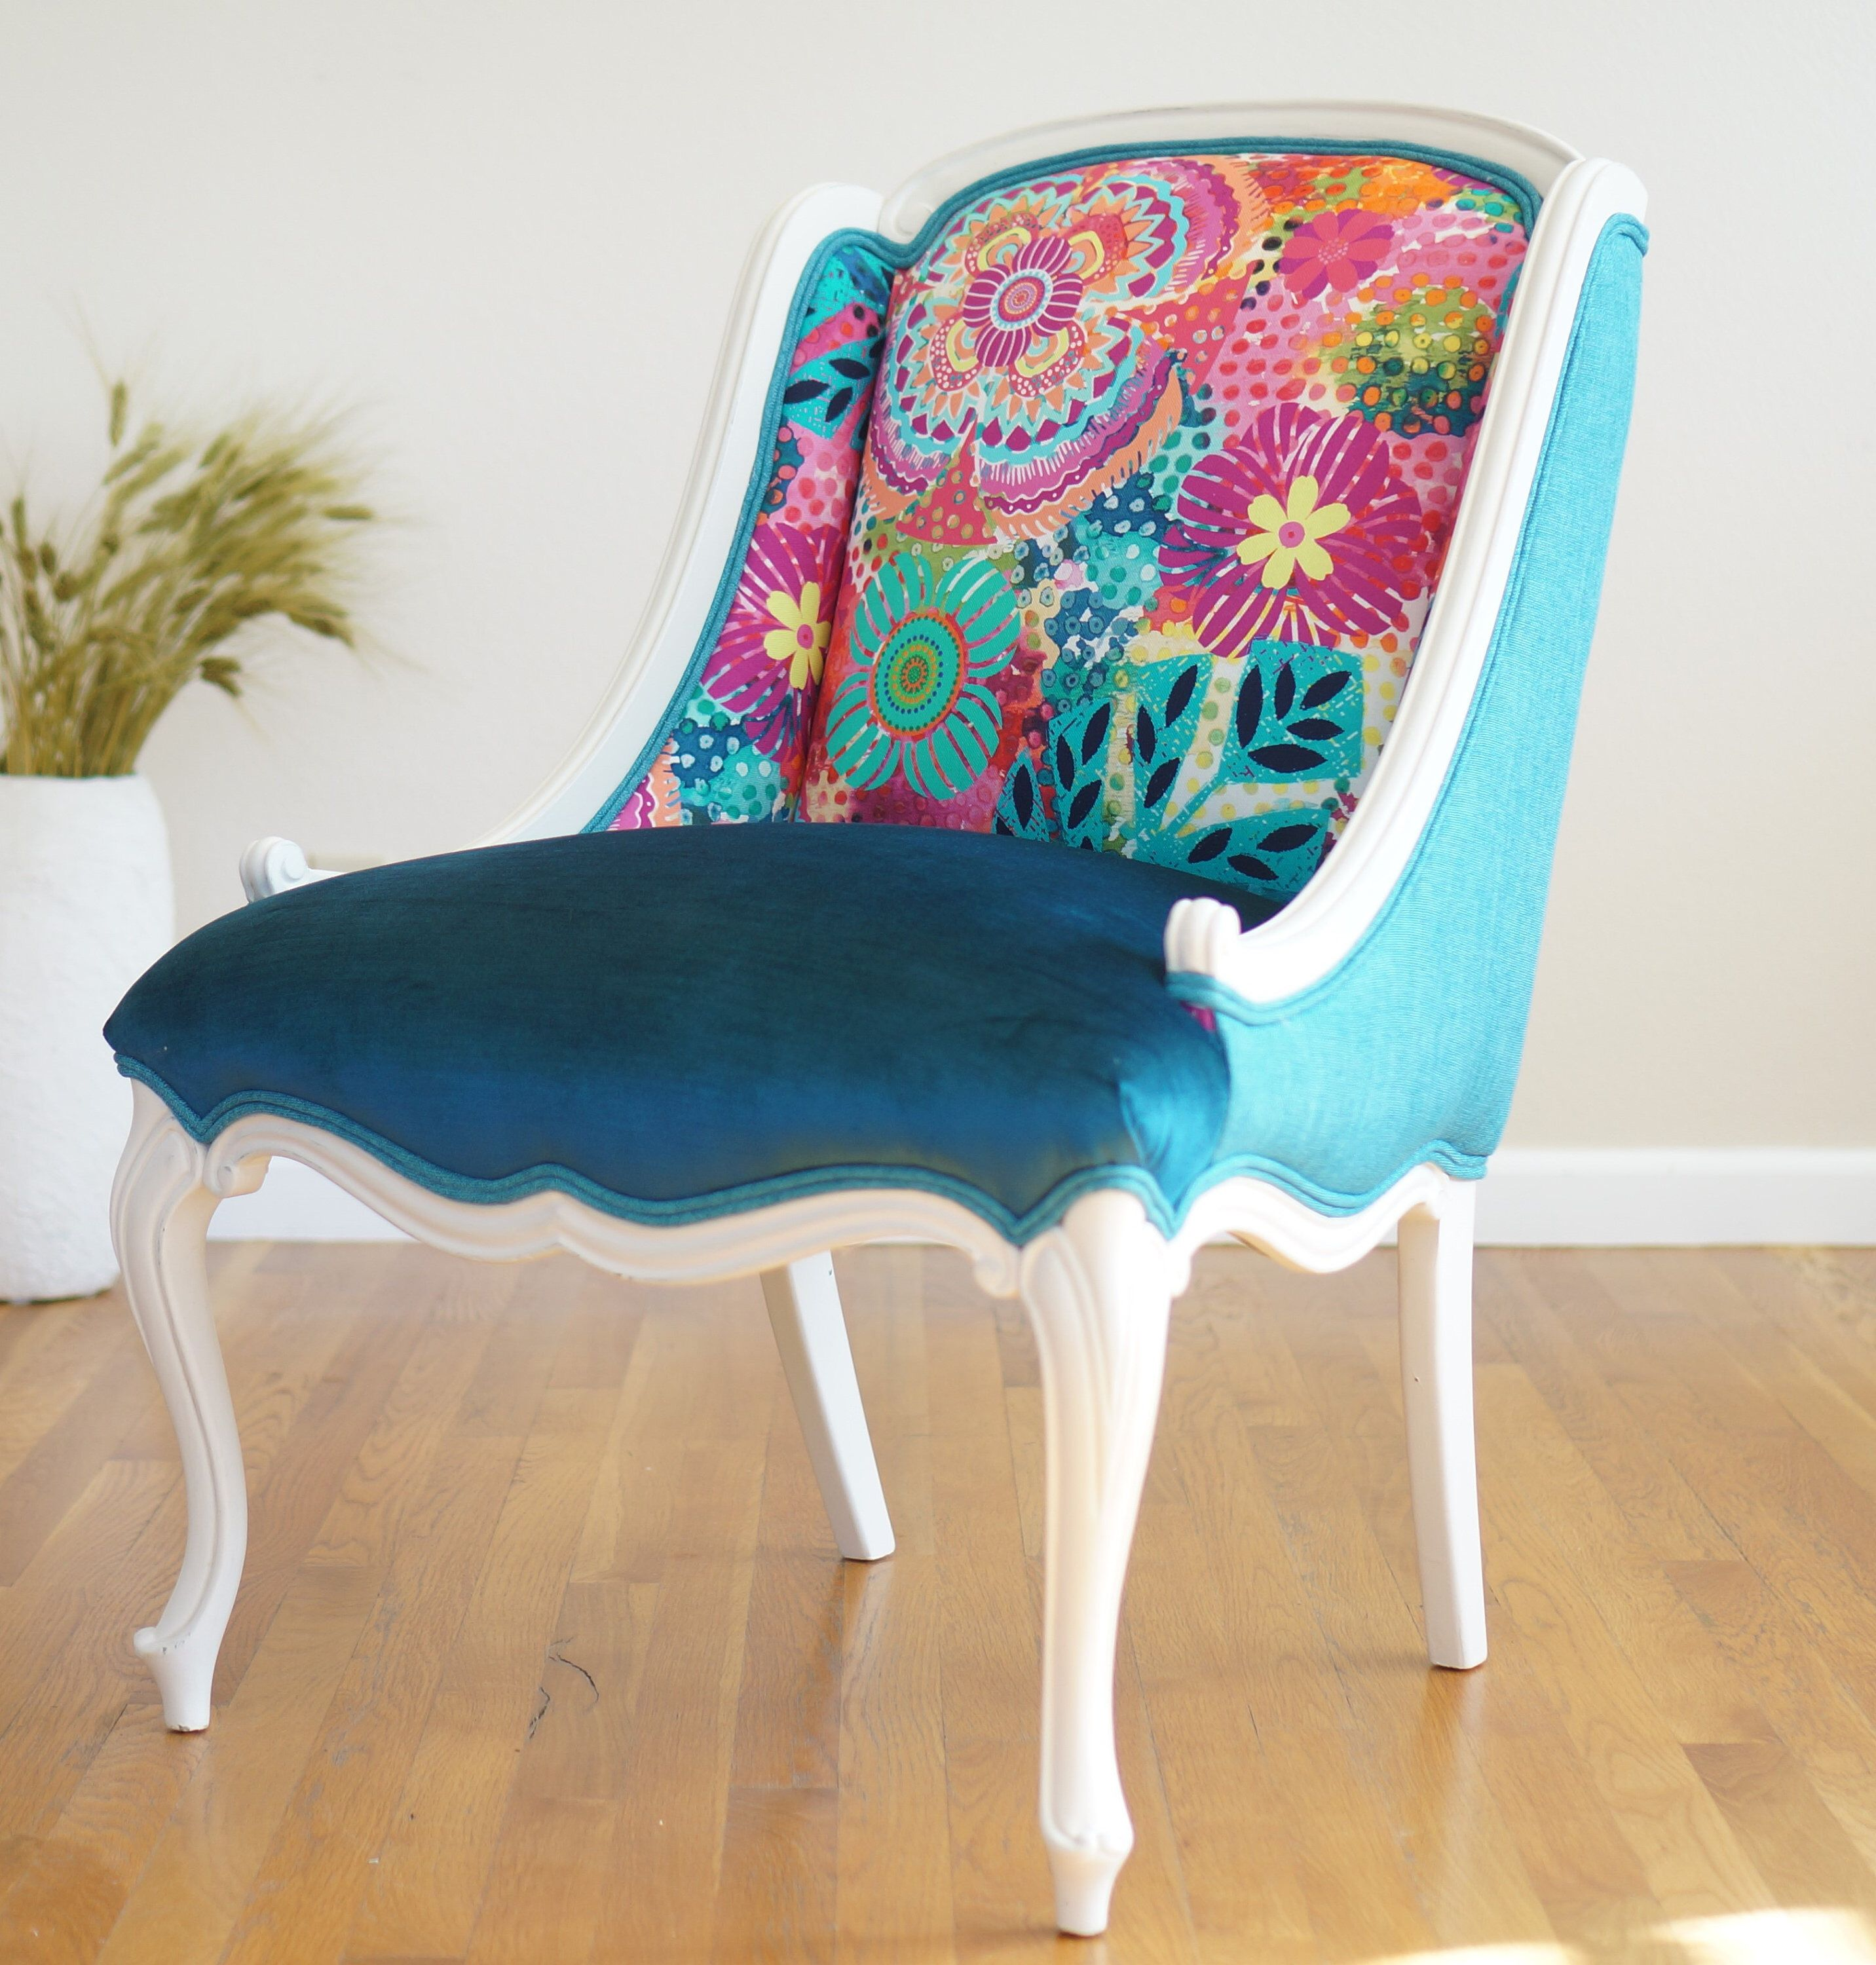 Available eclectic vintage french provincial chair